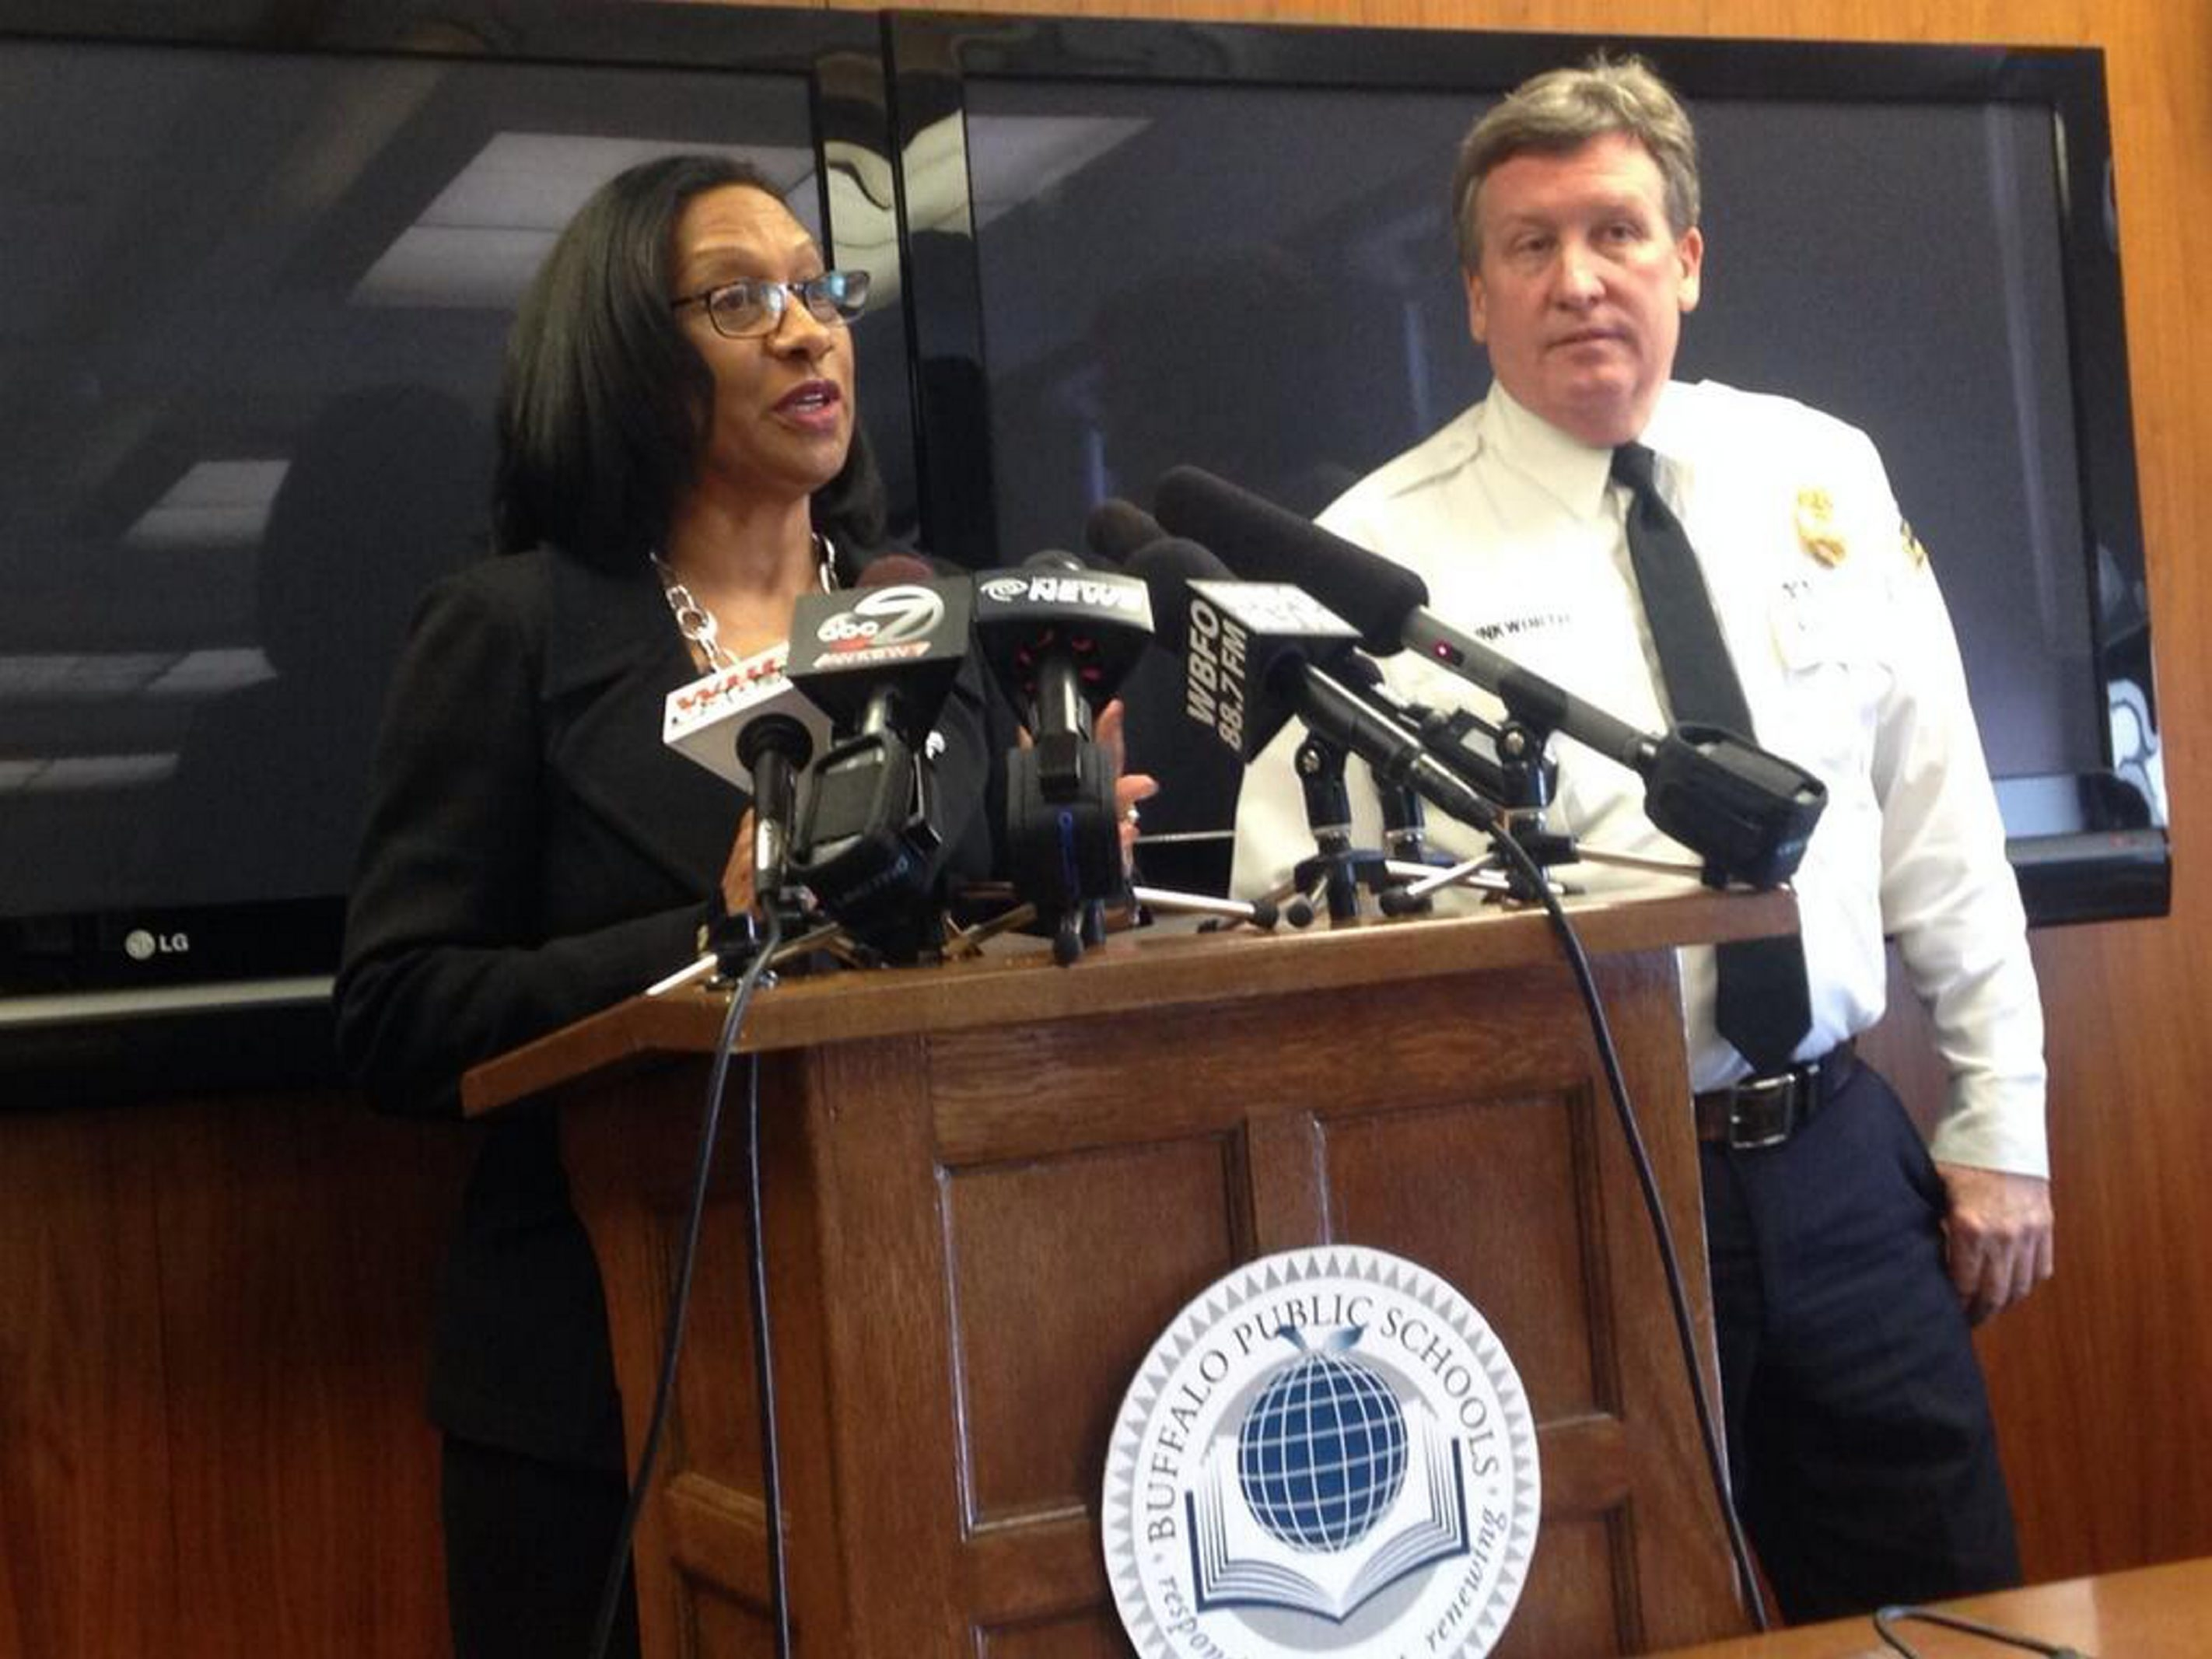 """We hope parents can appreciate that our first focus is on their children's safety. We contacted them at the very first opportunity,"" said Buffalo Schools Superintendent Pamela C. Brown, standing next to Kevin Brinkworth, chief of police, school safety and security during a news conference."